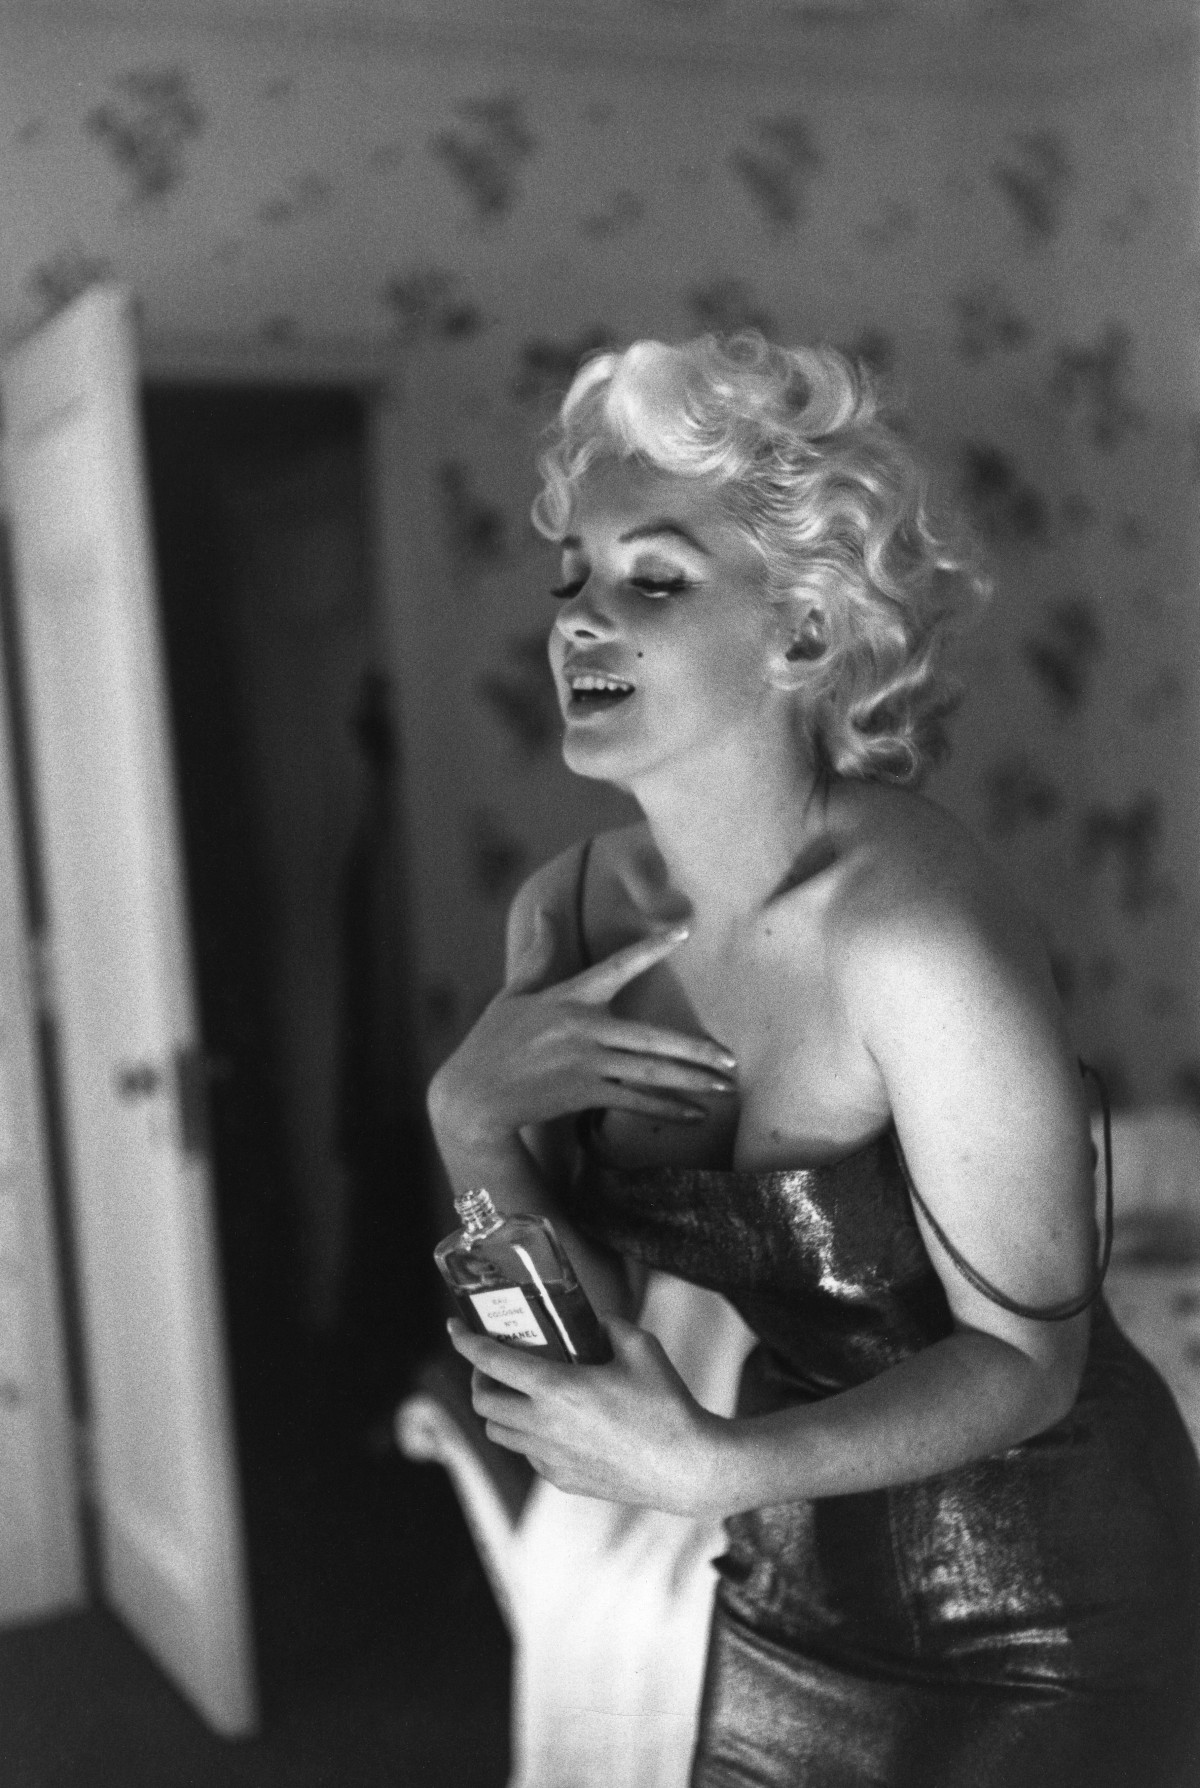 Marilyn Monroe Chanel n°5 Coco Chanel perfume profumo diva moda fashion mode cult stories cultstories.altervista.org